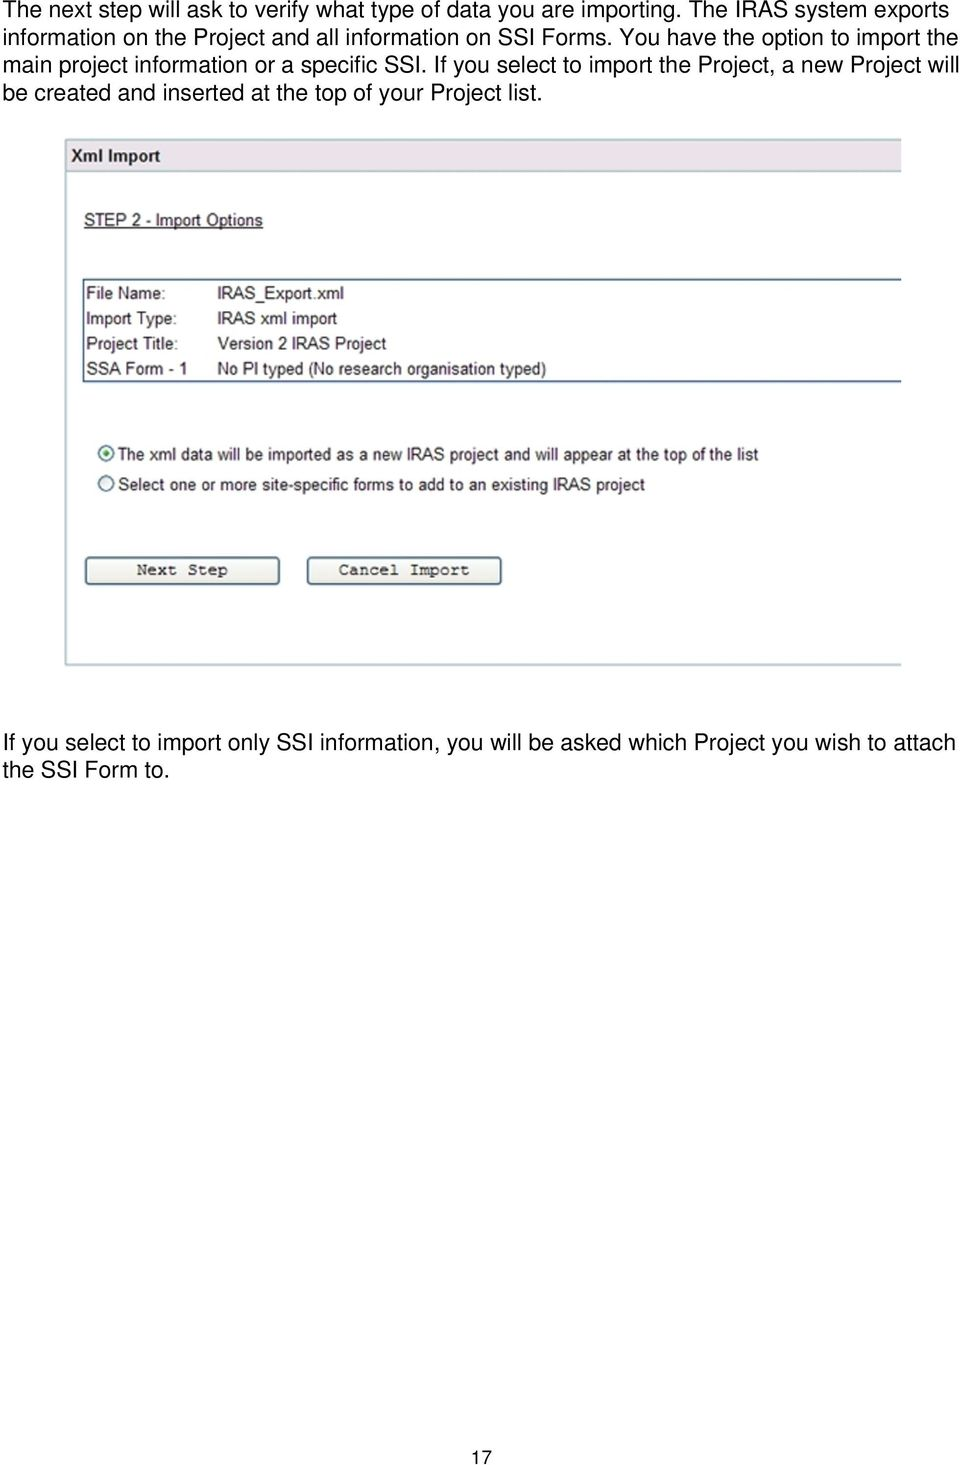 You have the option to import the main project information or a specific SSI.